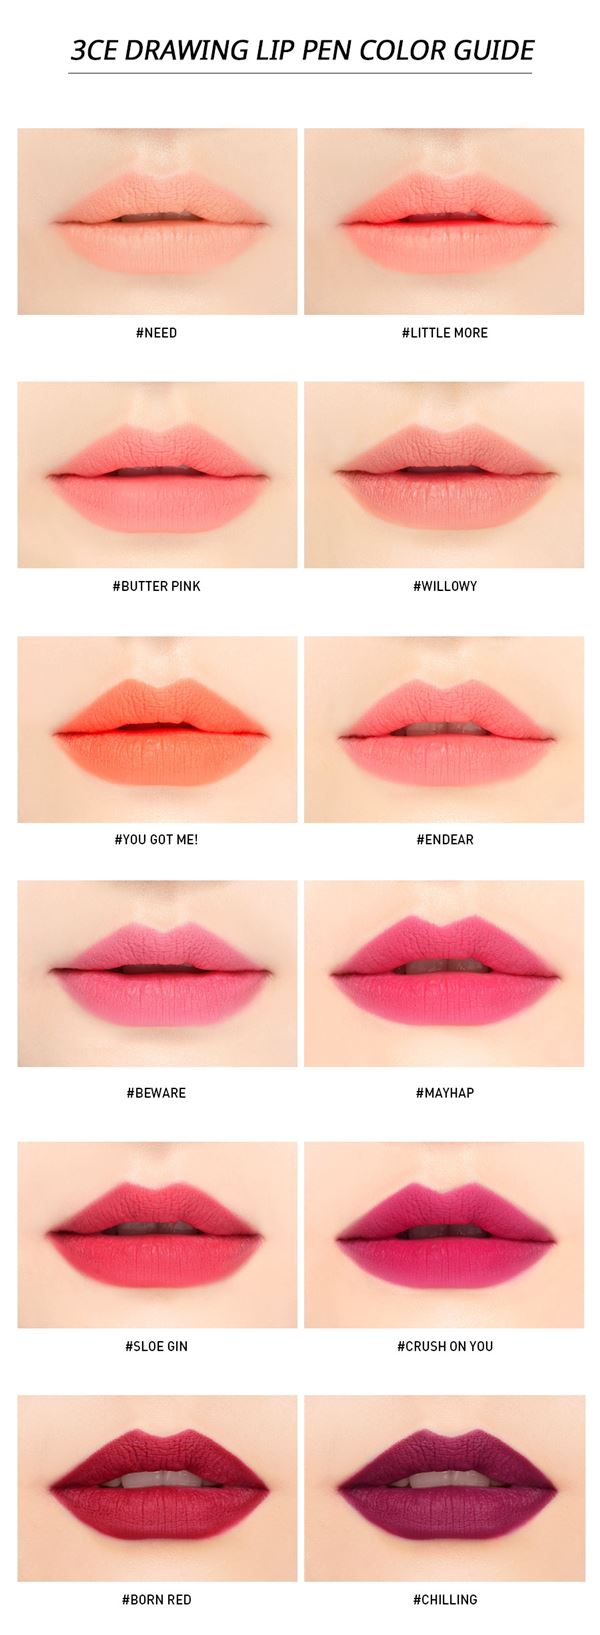 ลิป 3CE Stylenanda Drawing Lip Pen Kit